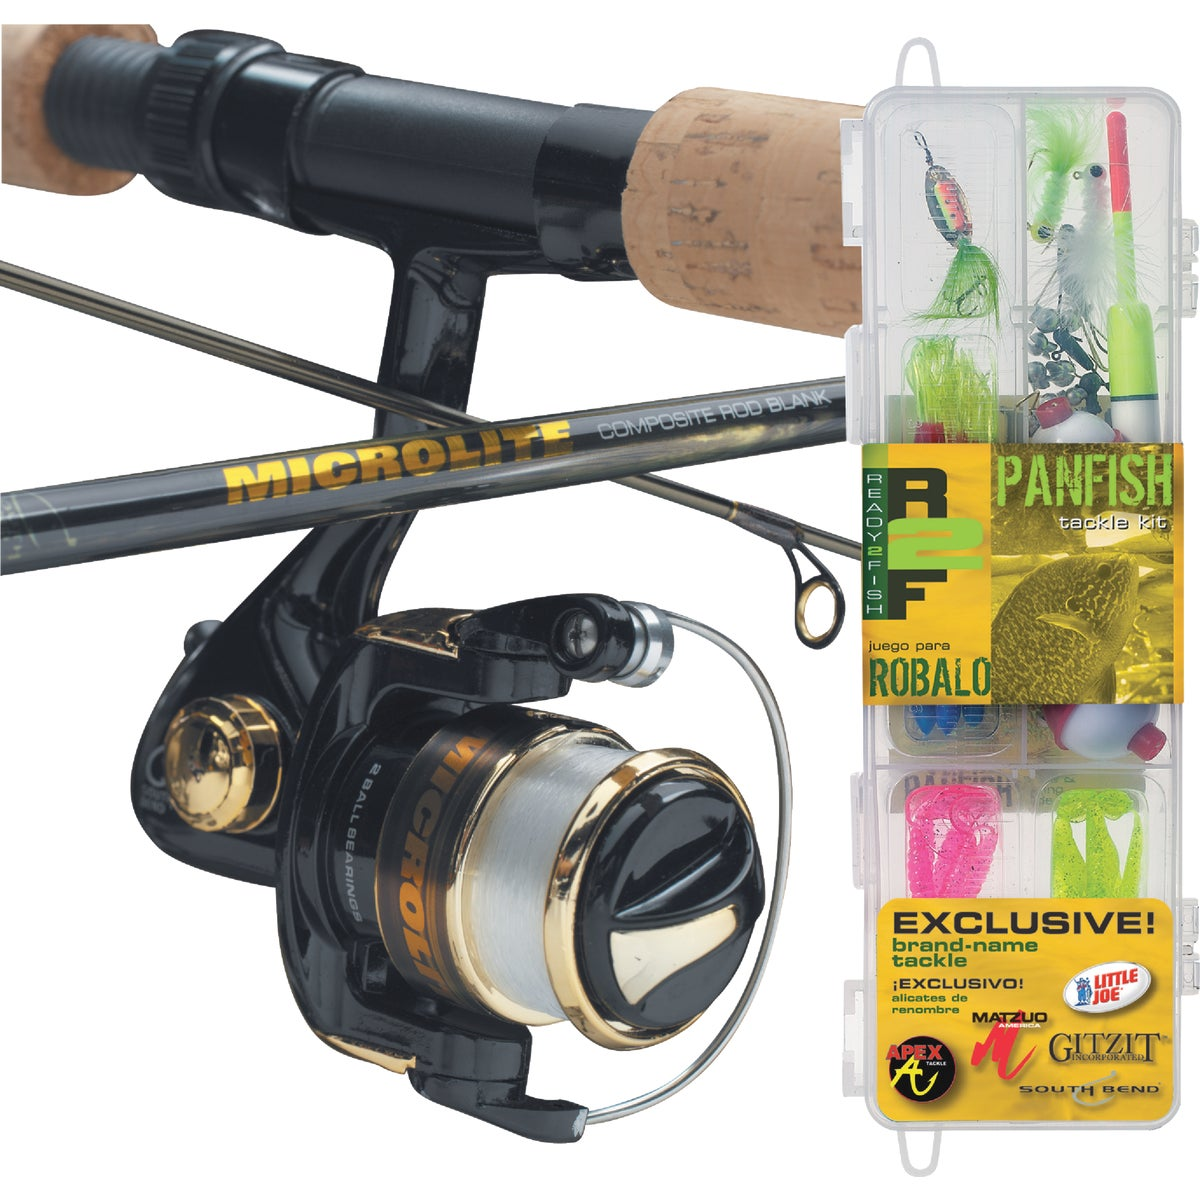 R2F PANFISH SPIN COMBO - R2F2-PF/S by South Bend Sptg Good